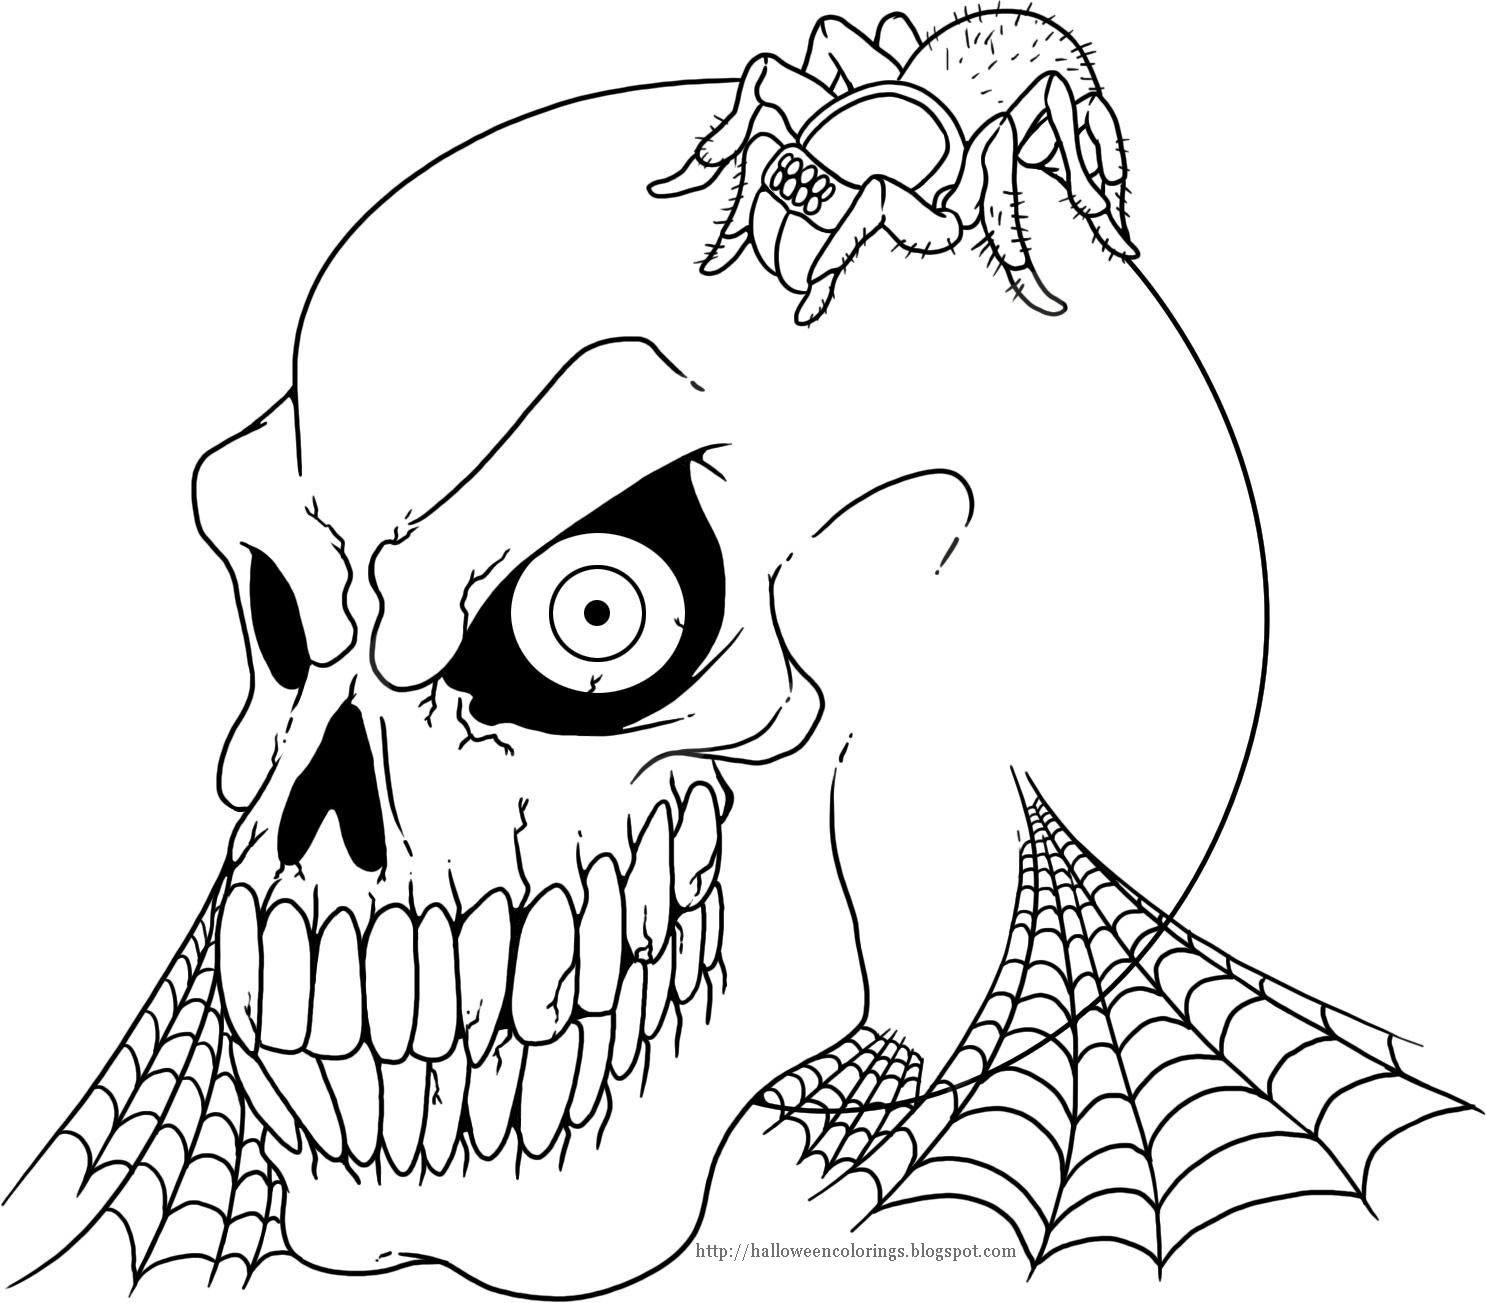 hollween coloring pages - photo#48